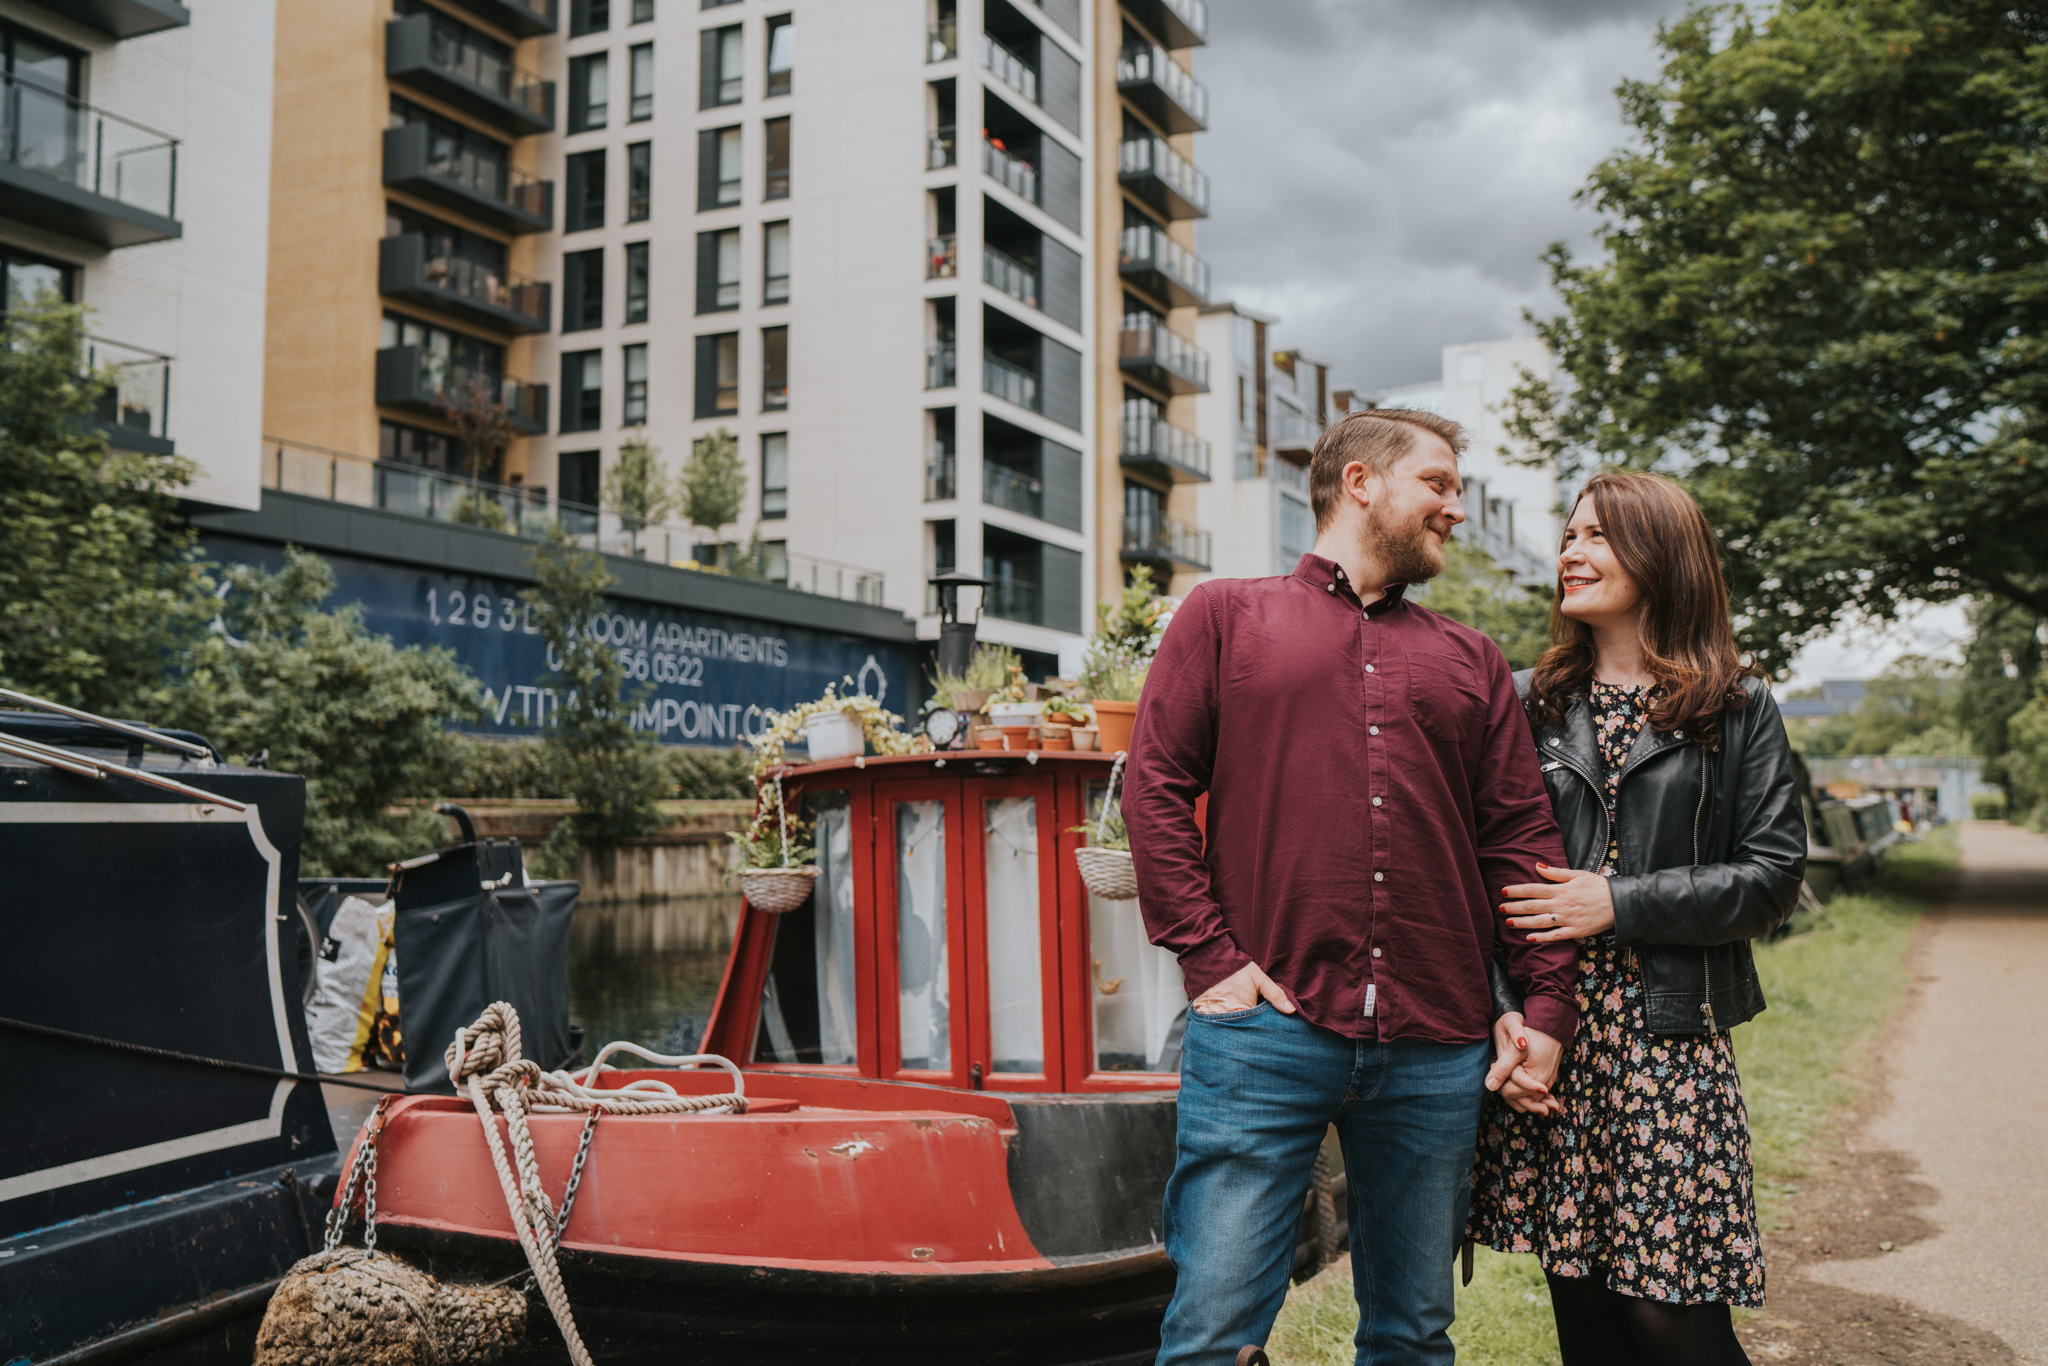 natalie-john-urban-london-engagement-grace-elizabeth-colchester-essex-alternative-wedding-photographer-essex-suffolk-norfolk-devon (13 of 66).jpg